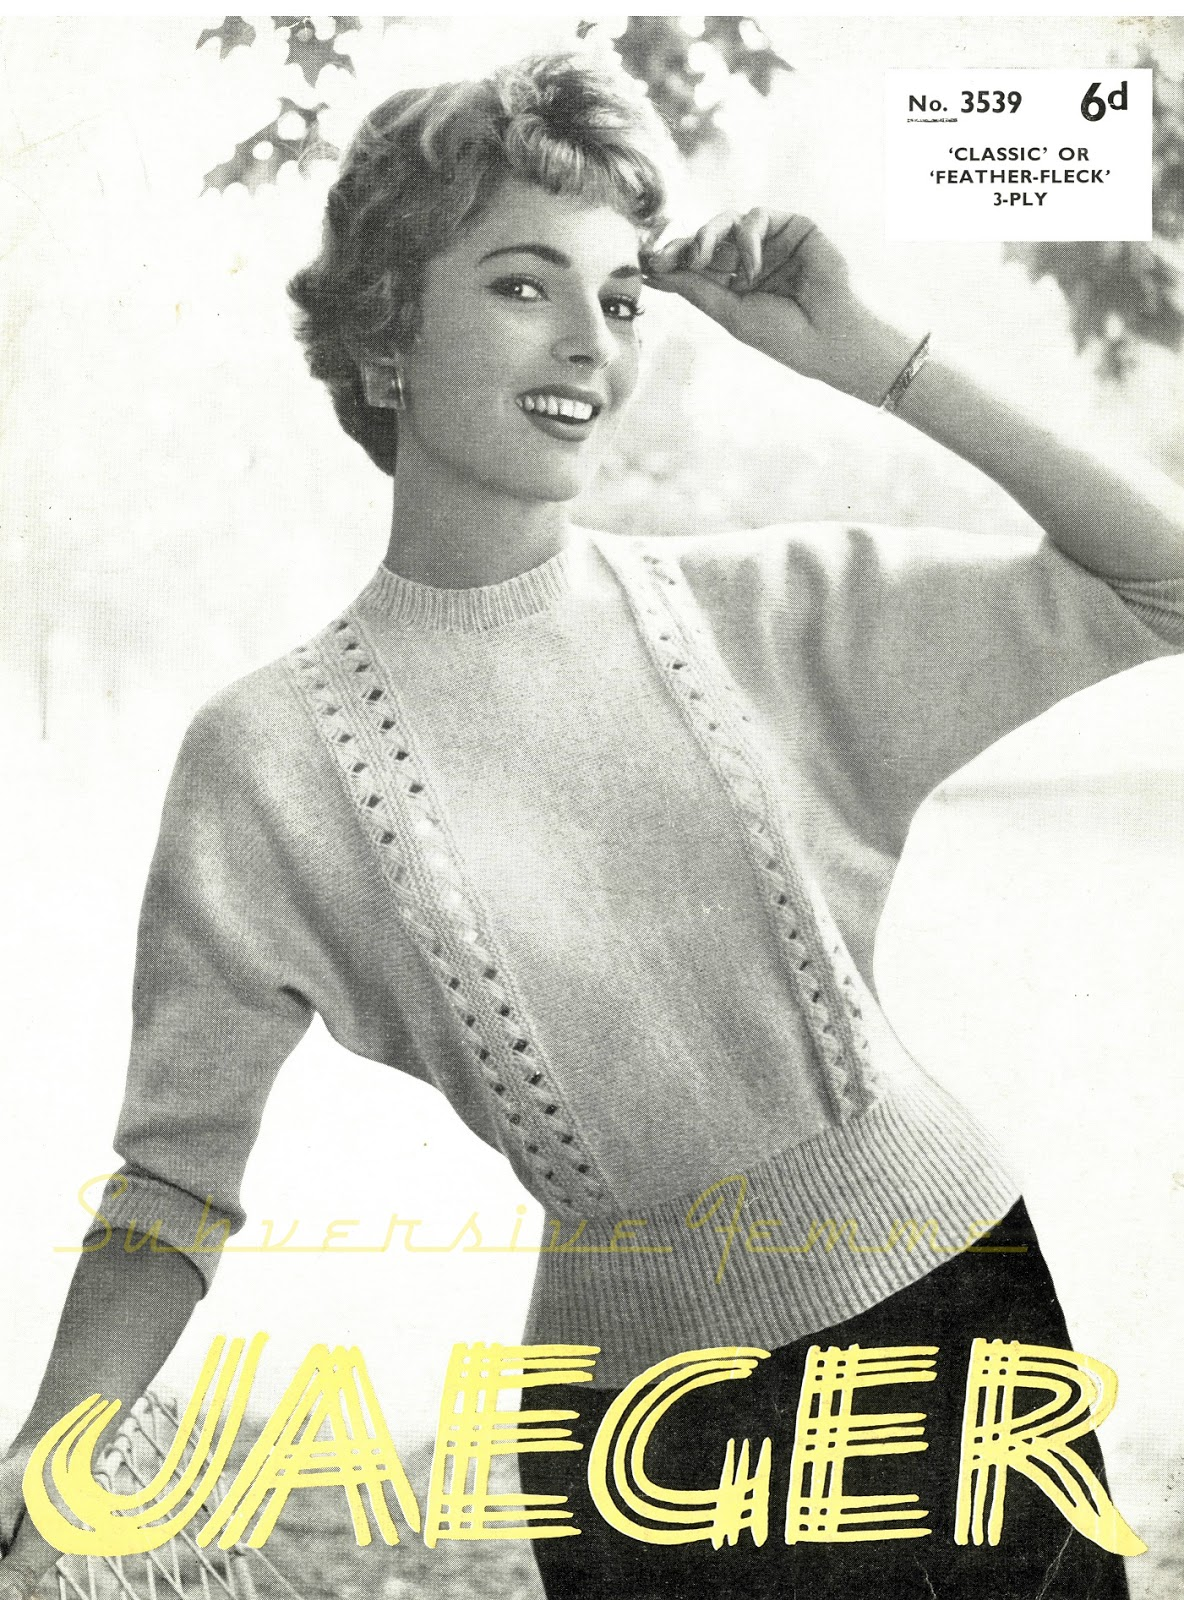 The Vintage Pattern Files: 1950s Knitting - Dolman Sweater with Openwork